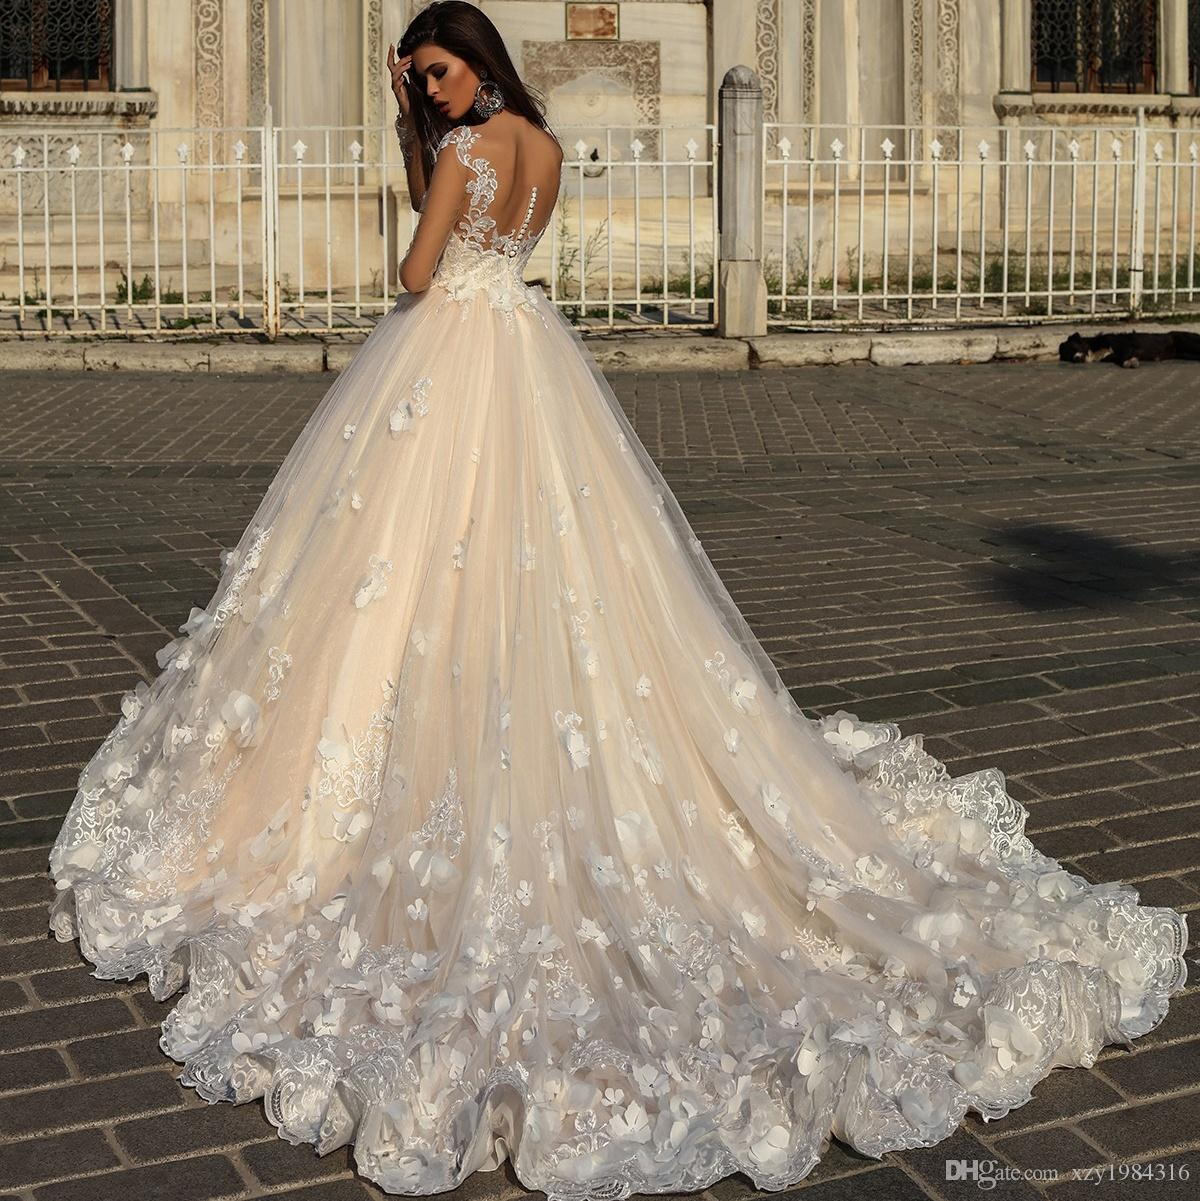 Wedding Dress Lace Appliques Bride Dresses Short Wedding Gown Tulle Bridal Dresses